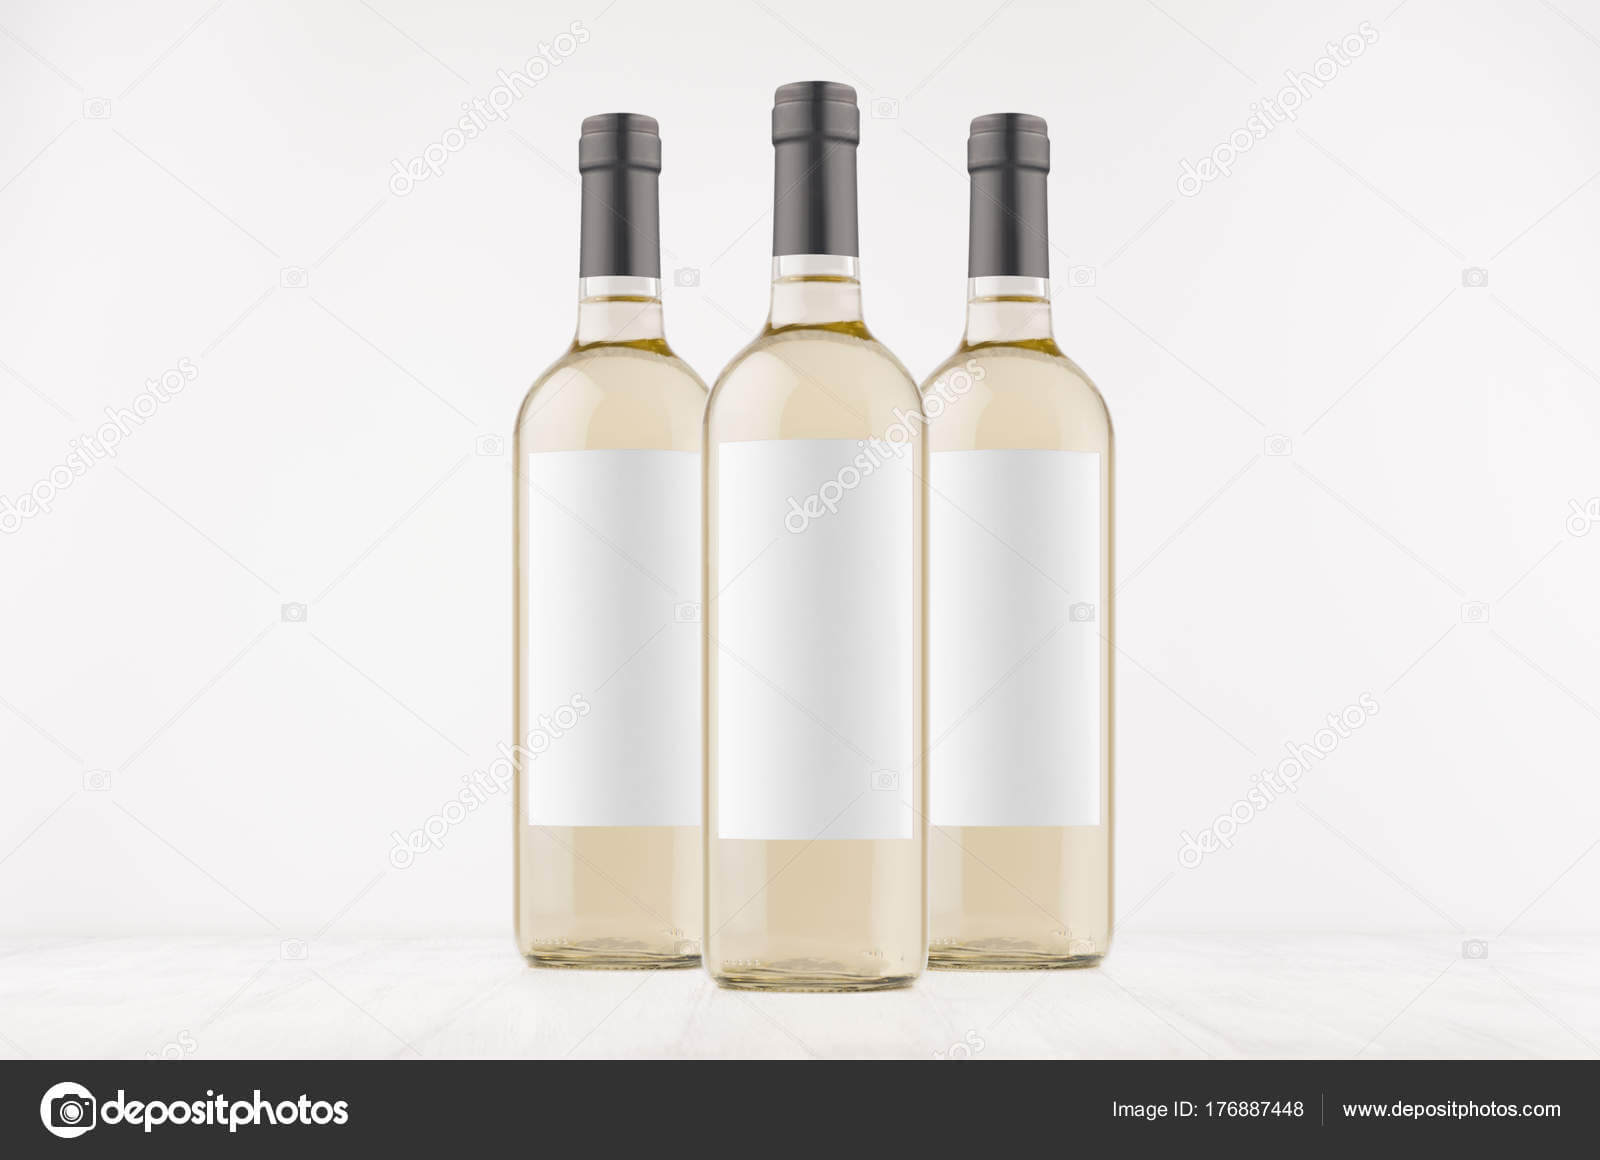 Three Trasparent Wine Bottles Blank White Labels White within Blank Wine Label Template